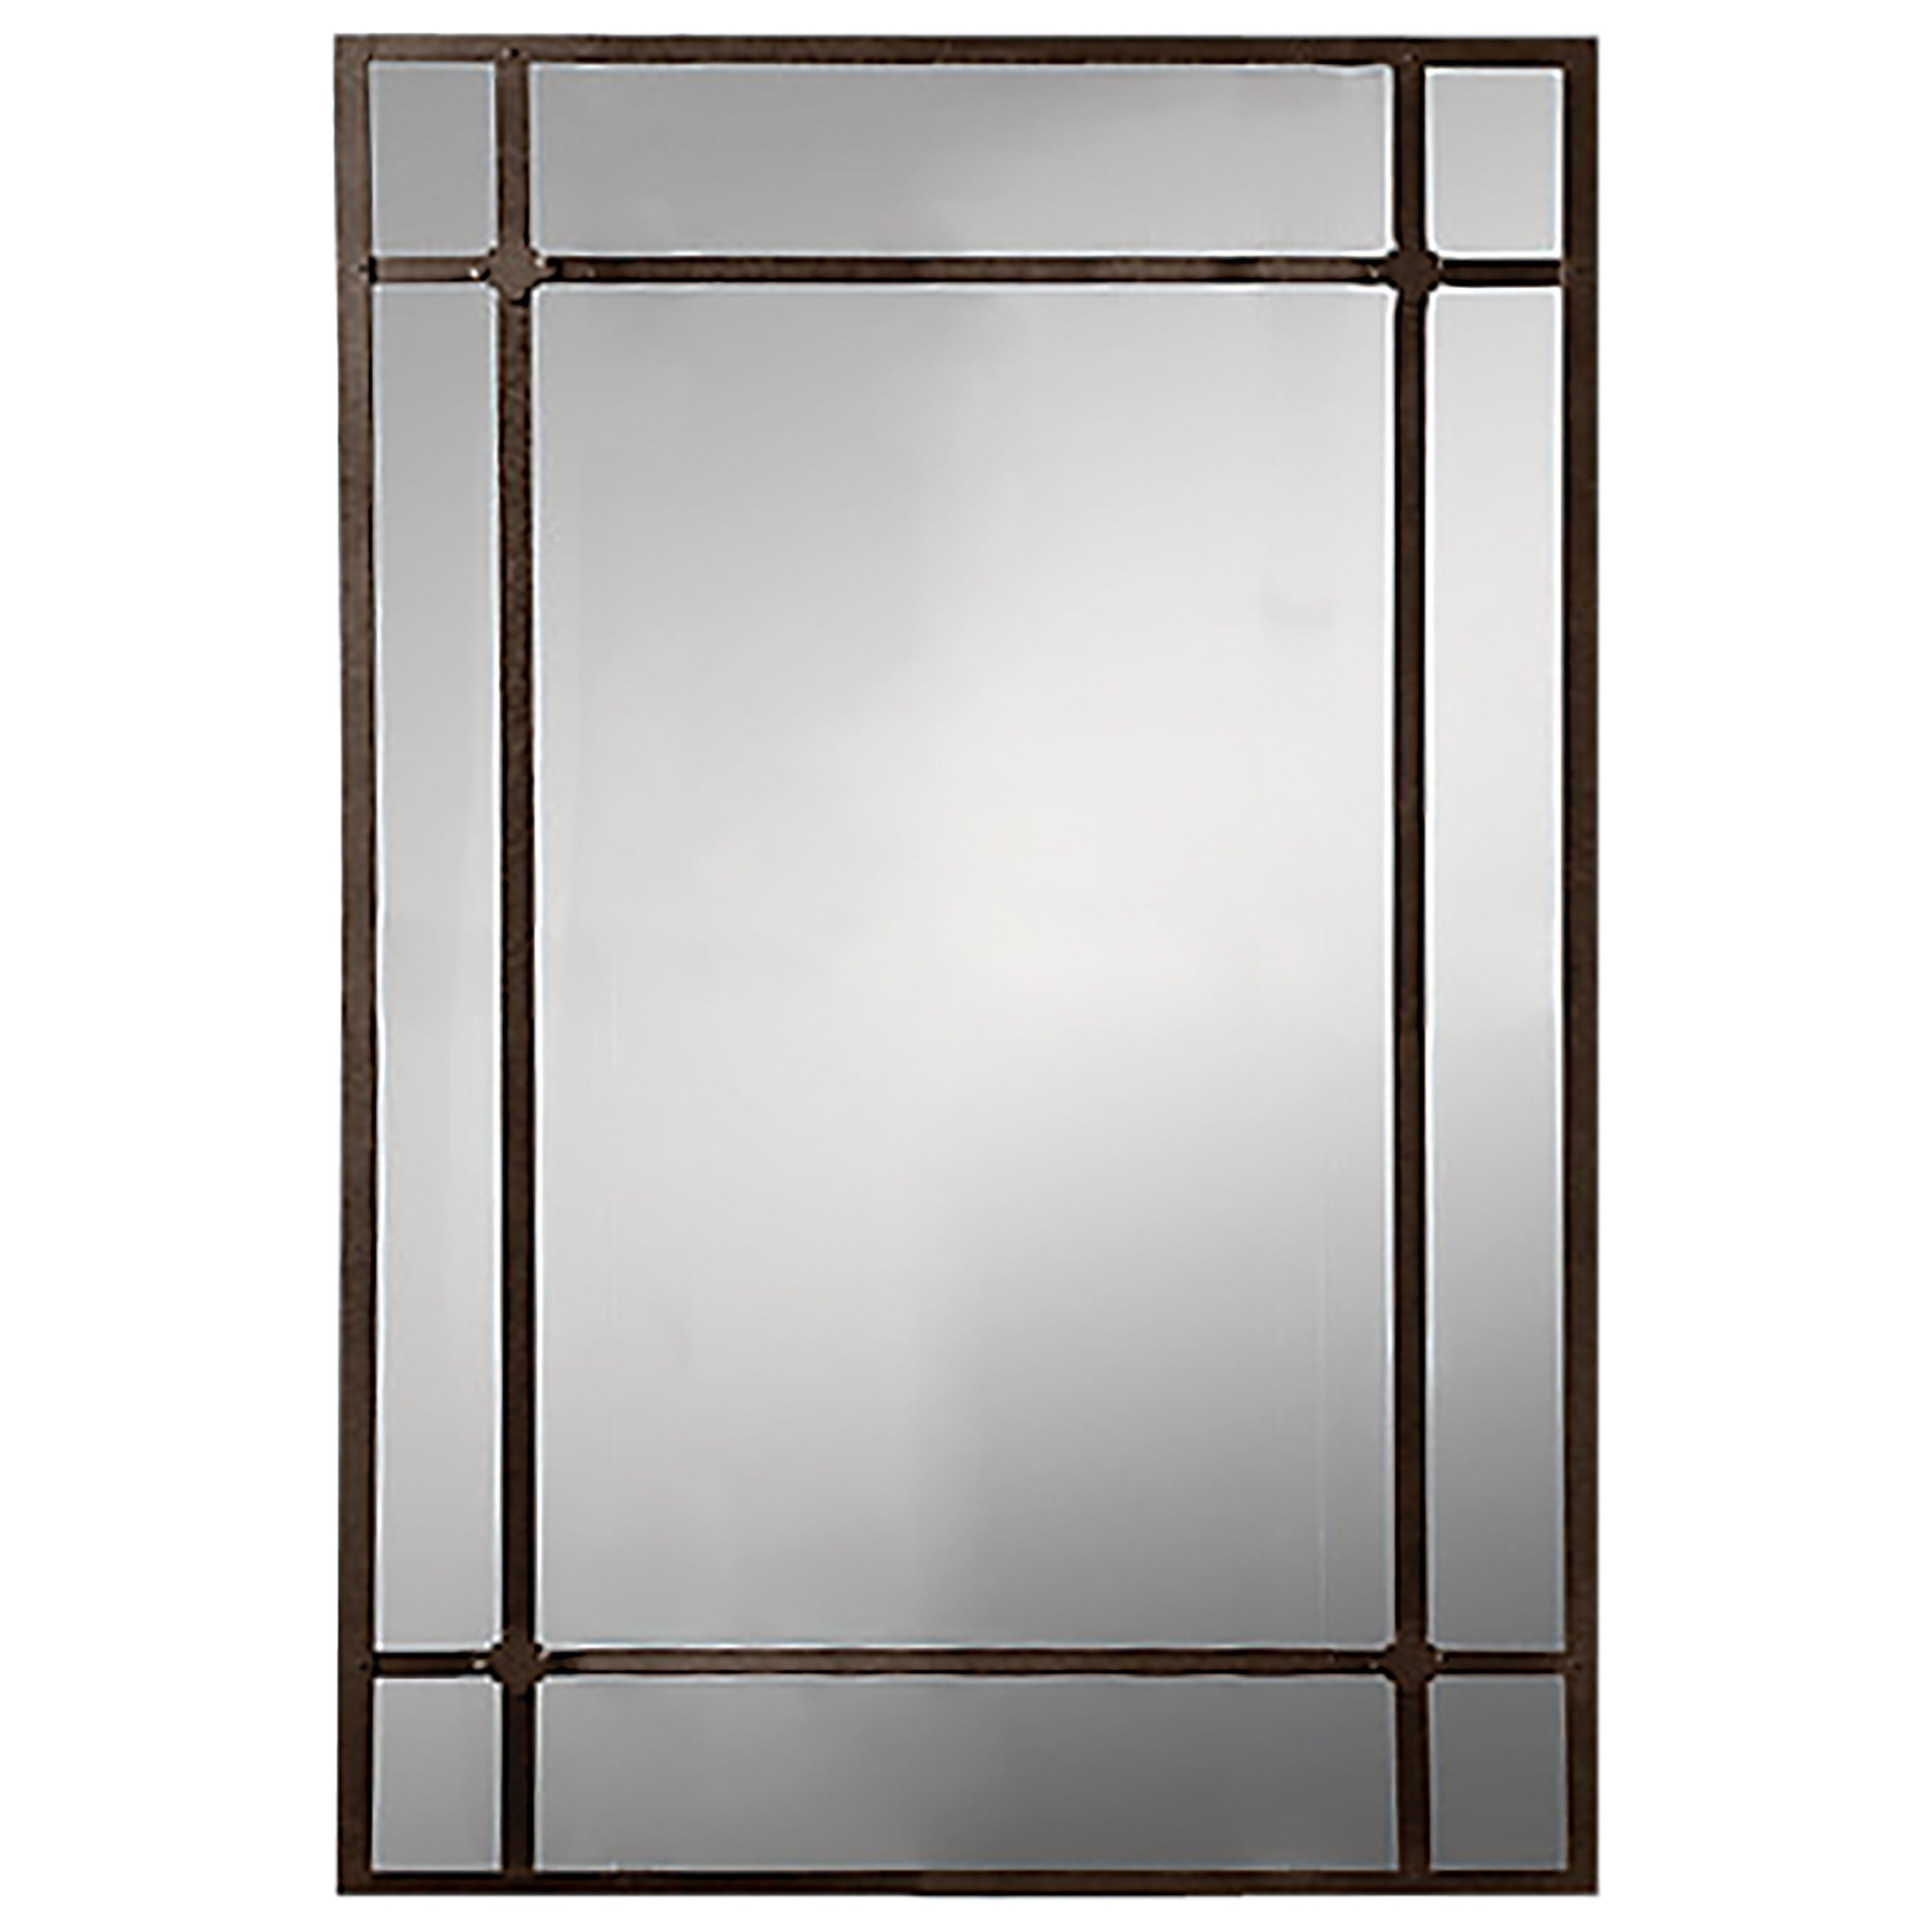 Decor Rest Accent On Home Mirrors Bologna Antiqued Metal